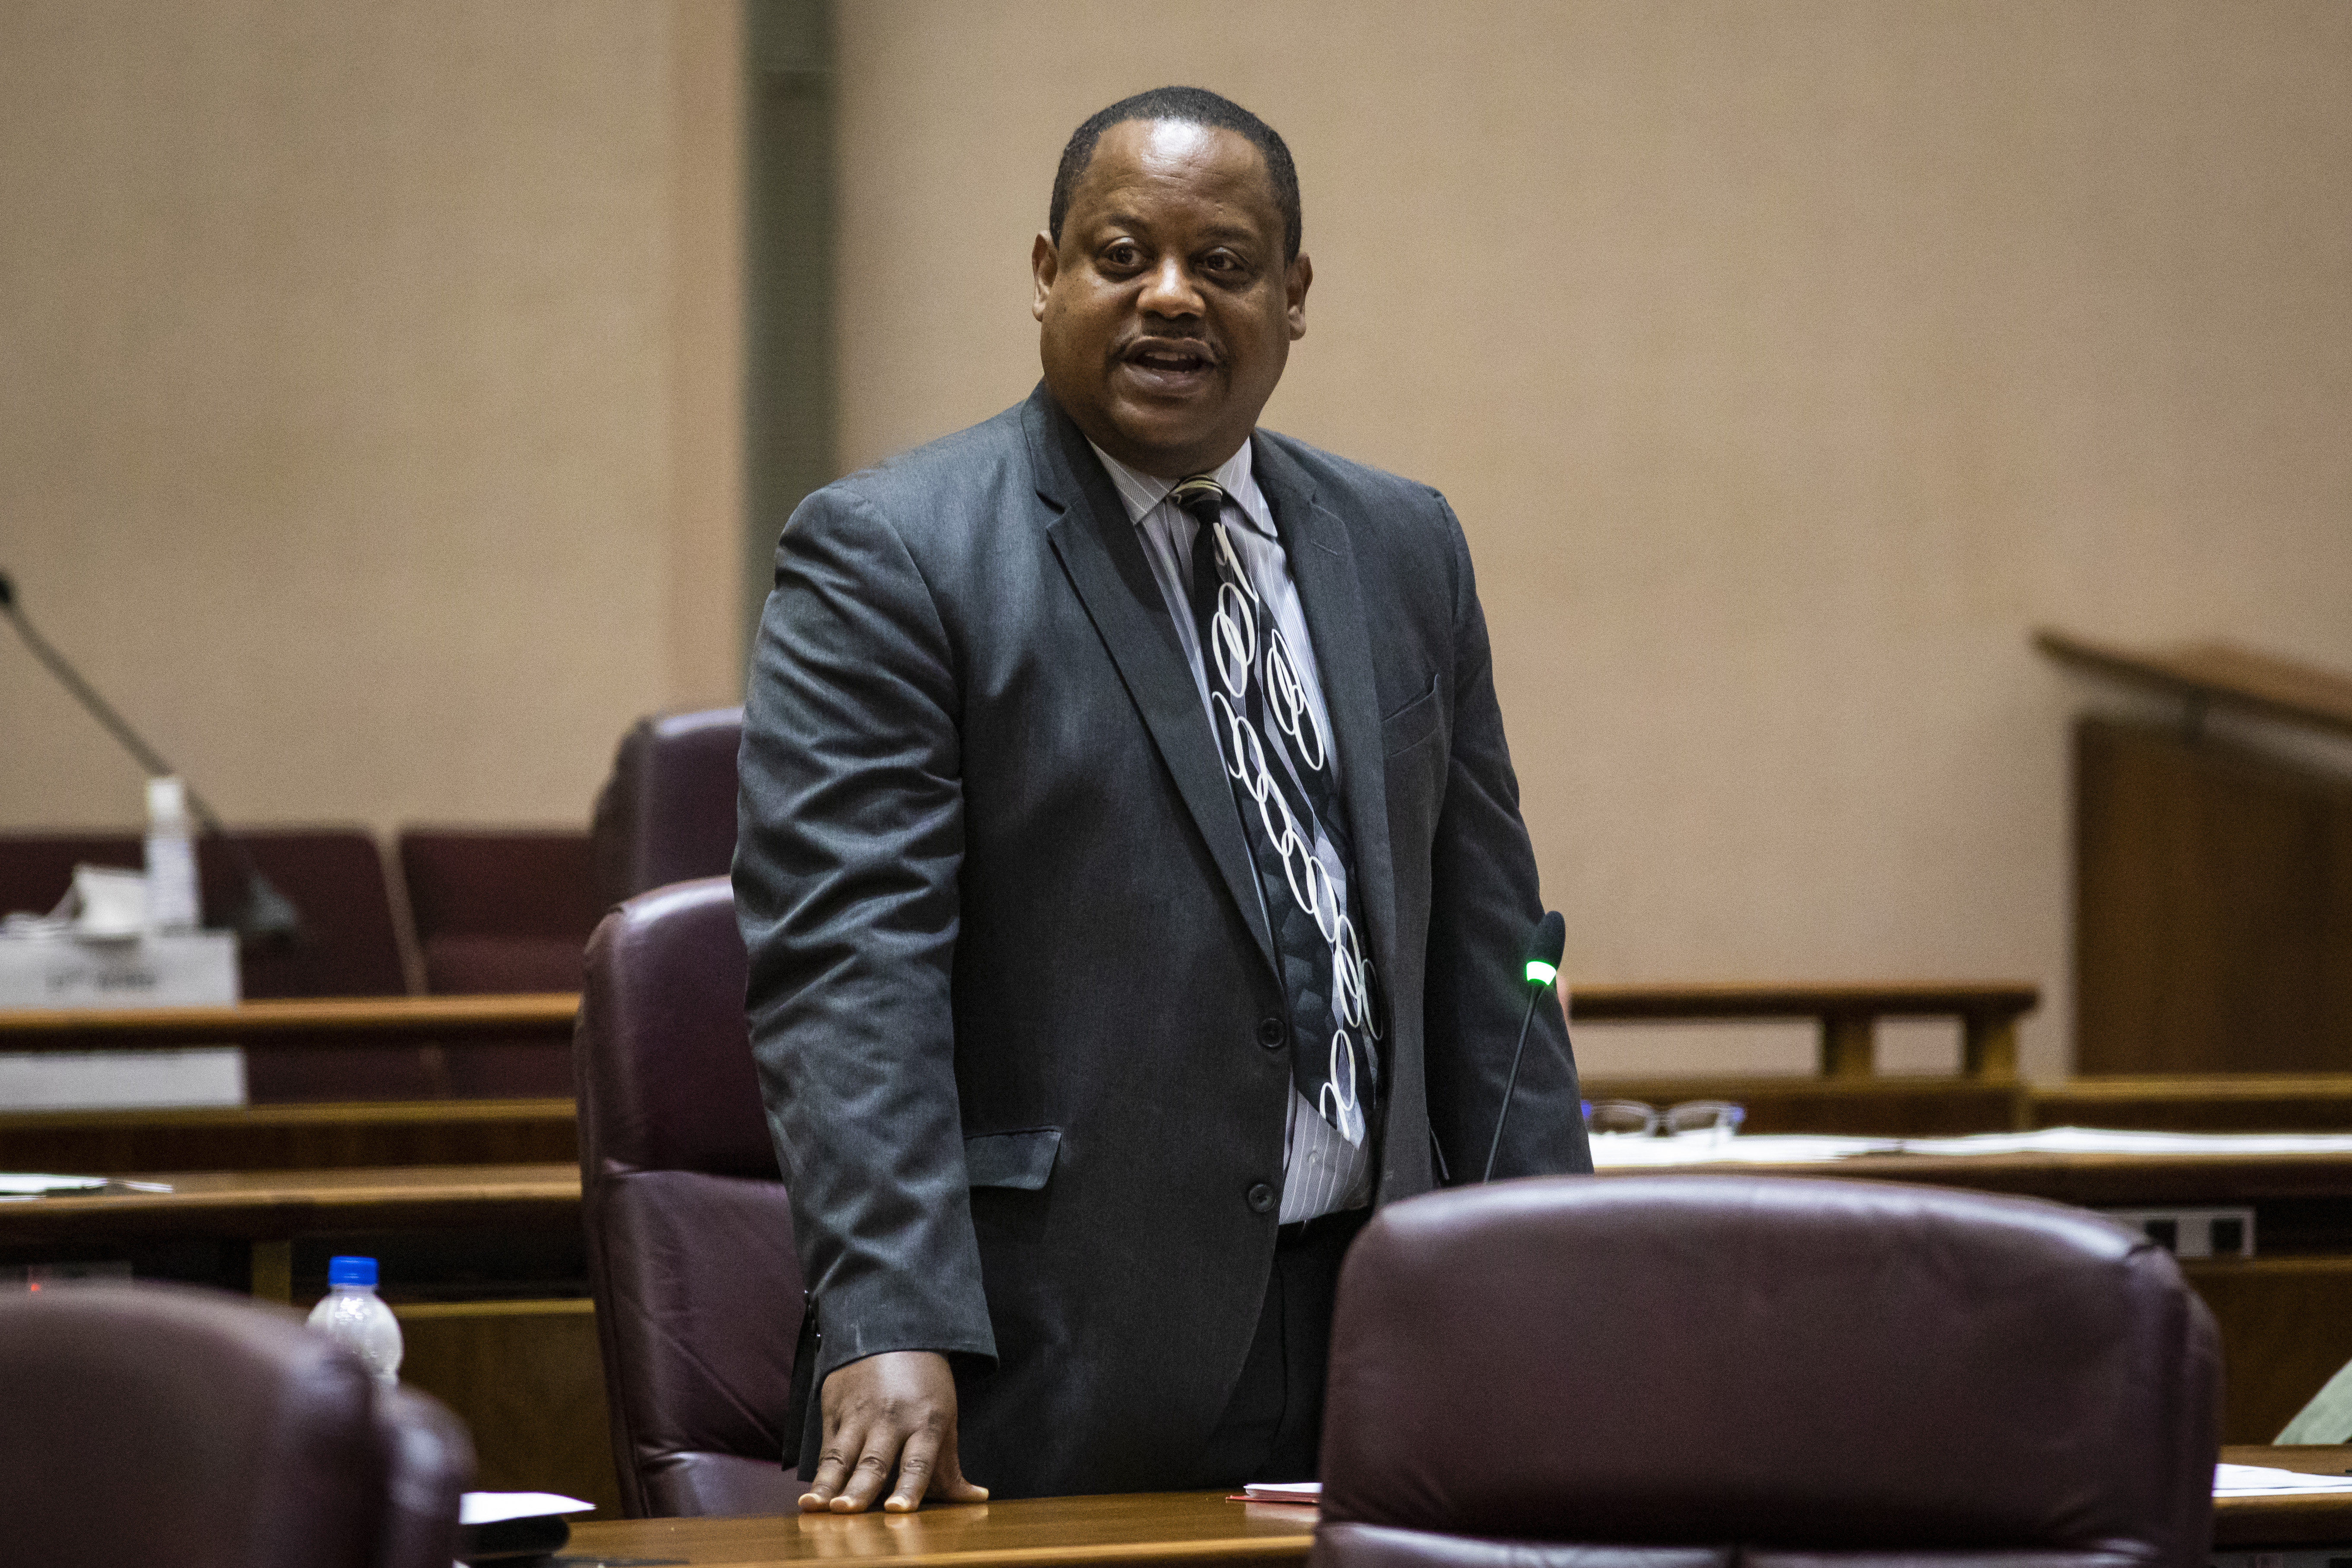 Ald. Roderick Sawyer (6th) speaks in support of a proposal for civilian oversight of the Chicago Police Department during a Chicago City Council meeting Wednesday, July 21, 2021 at City Hall.